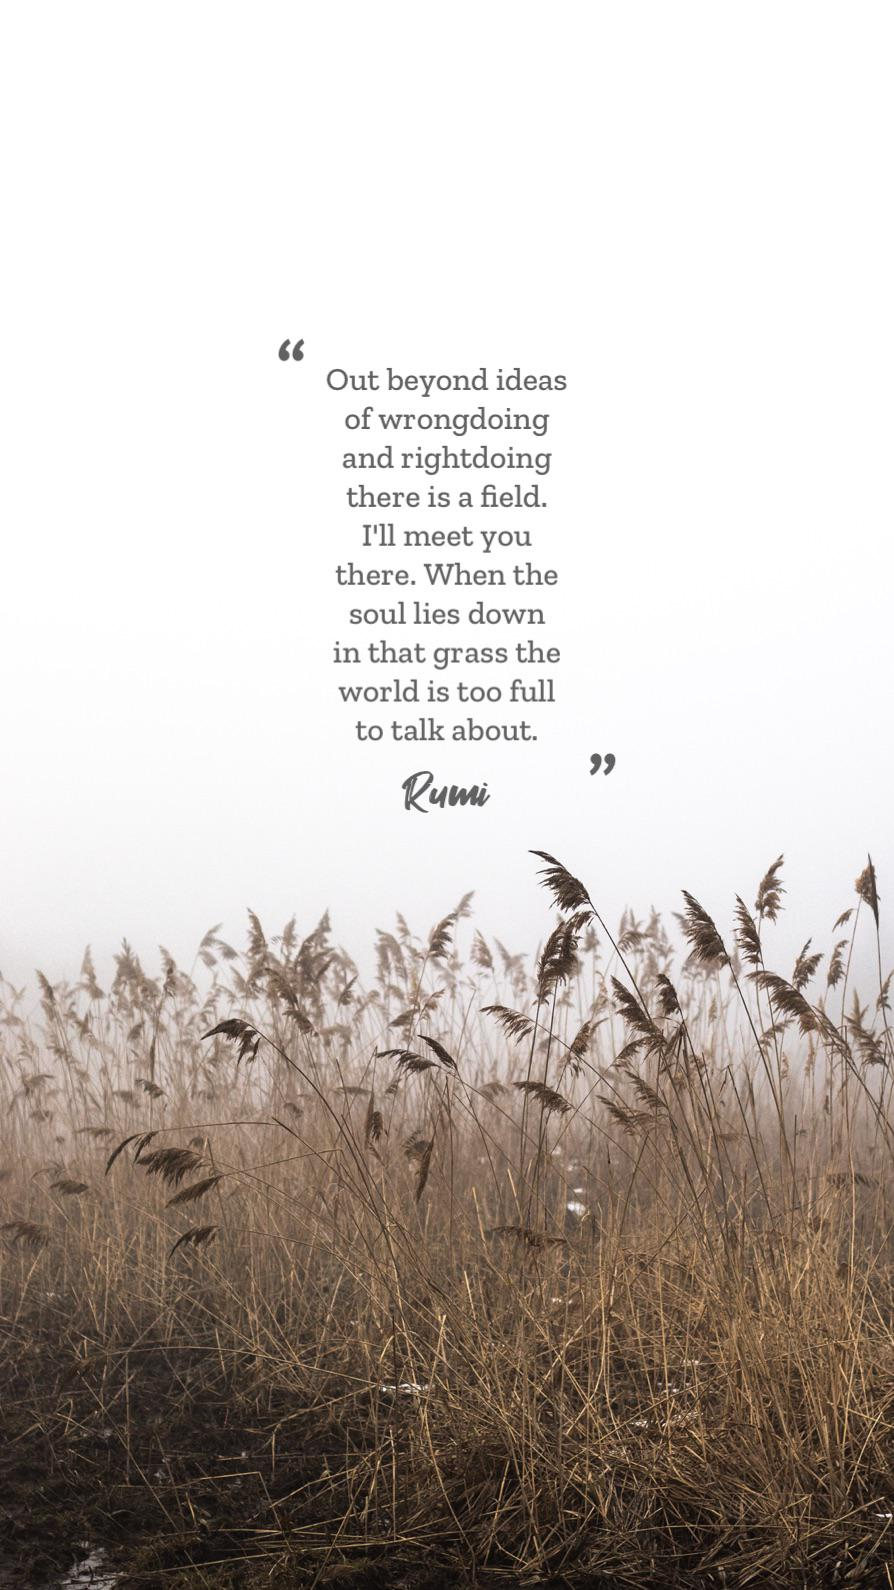 """ Out beyond ideas of wrongdoing and rightdoing there is a field. I'll meet you there. When the soul lies down in that grass the world is too full to talk about. https://inspirational.ly"